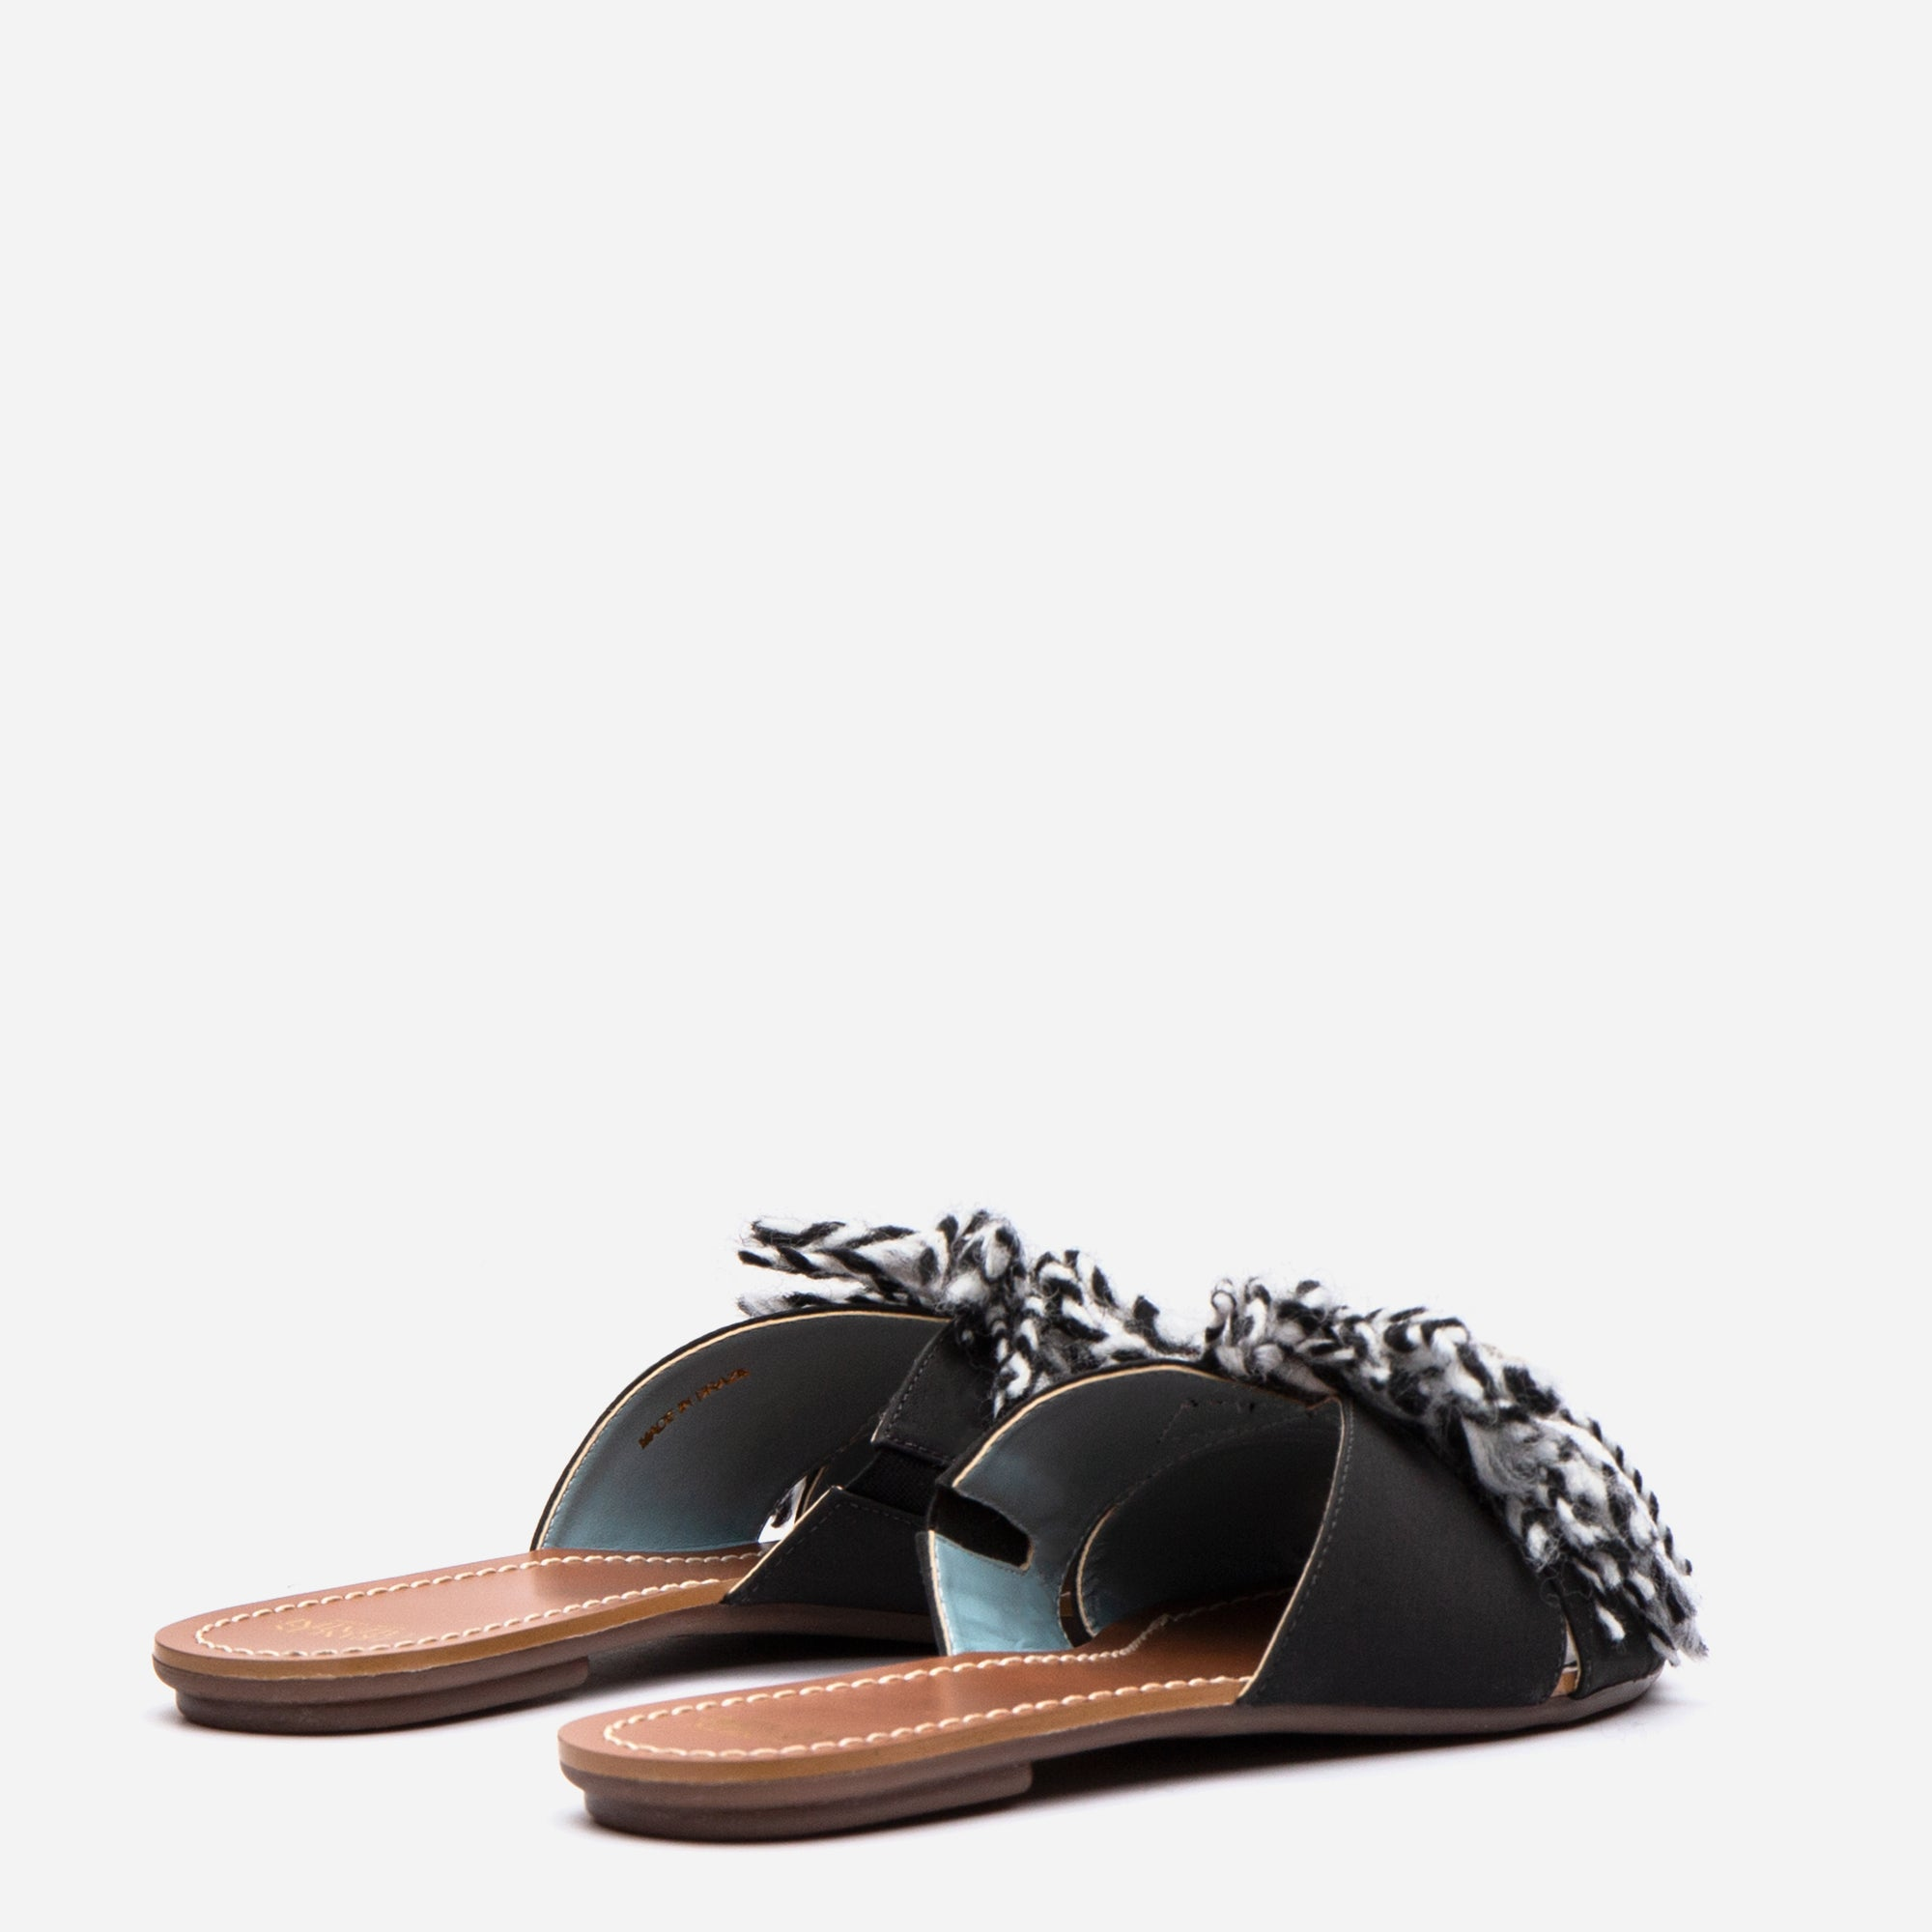 Trez Yarn Fringe Slide Black Multi